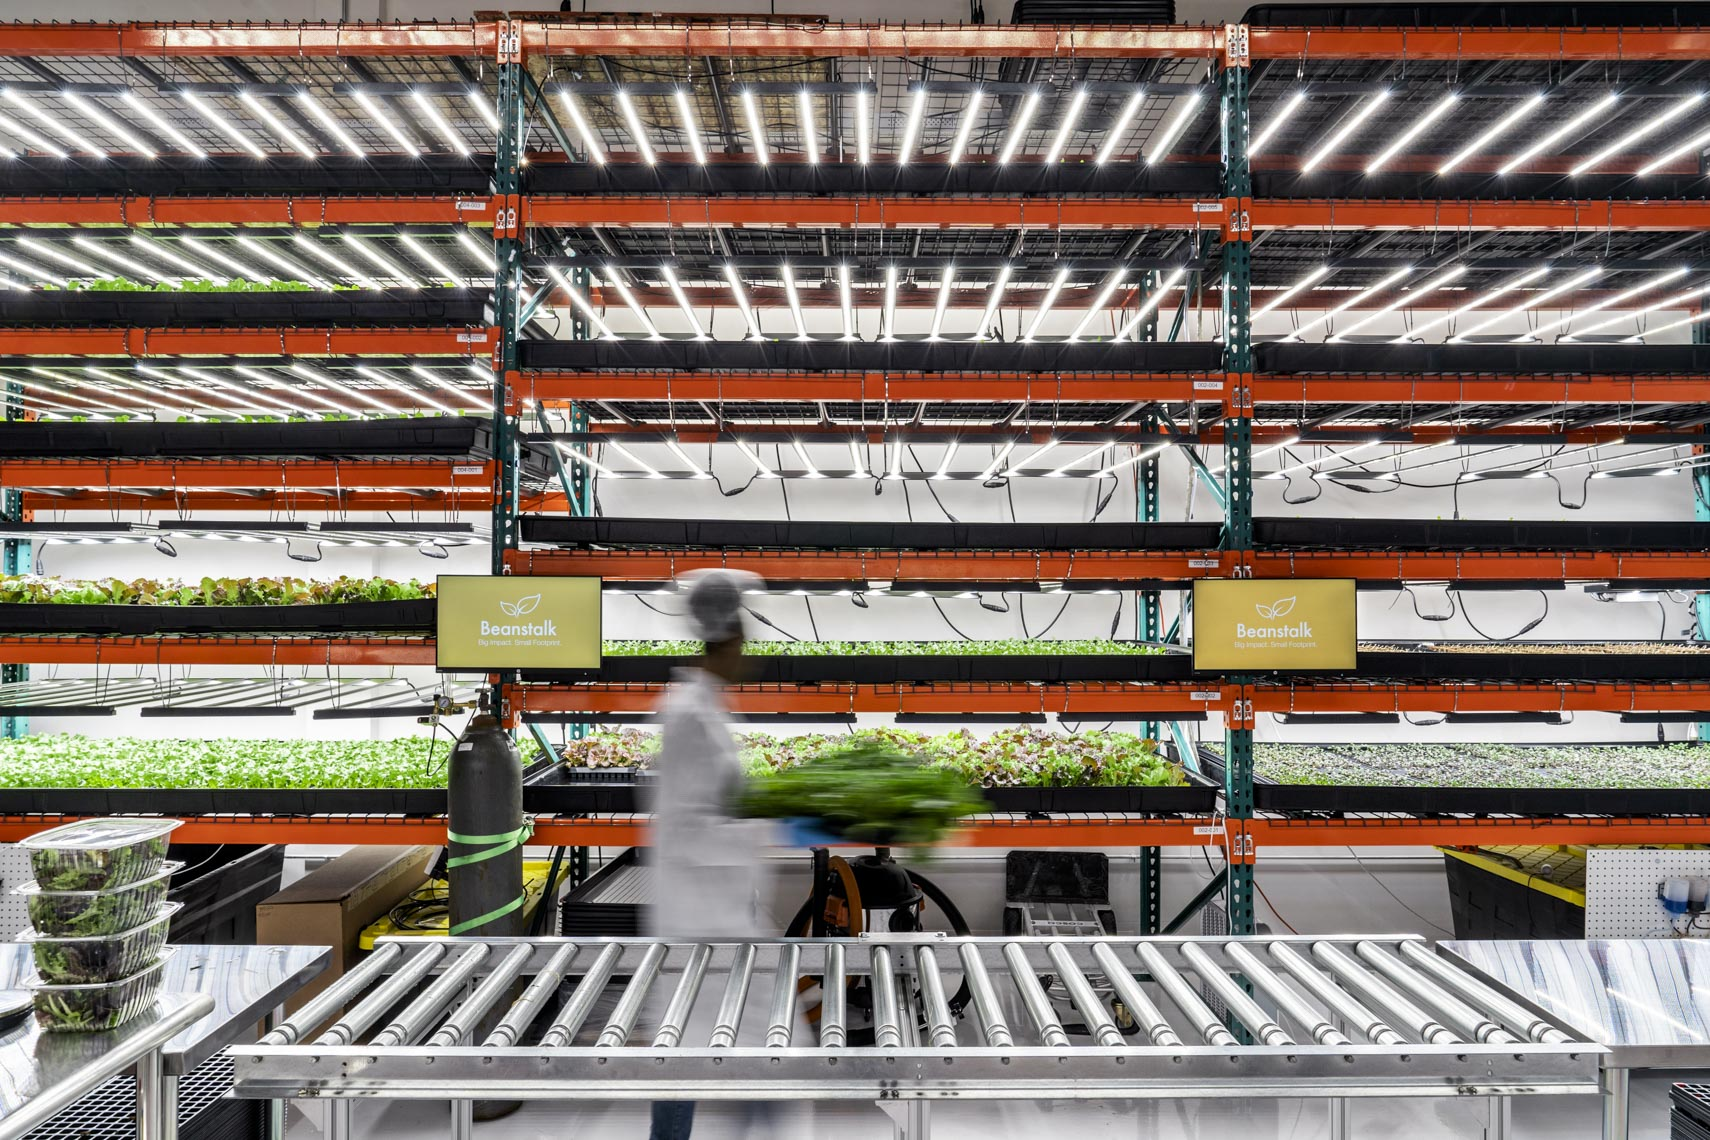 Rows of lettuce seedlings at Beanstalk Farms, an automated indoor farming operation in suburban Washington DC.